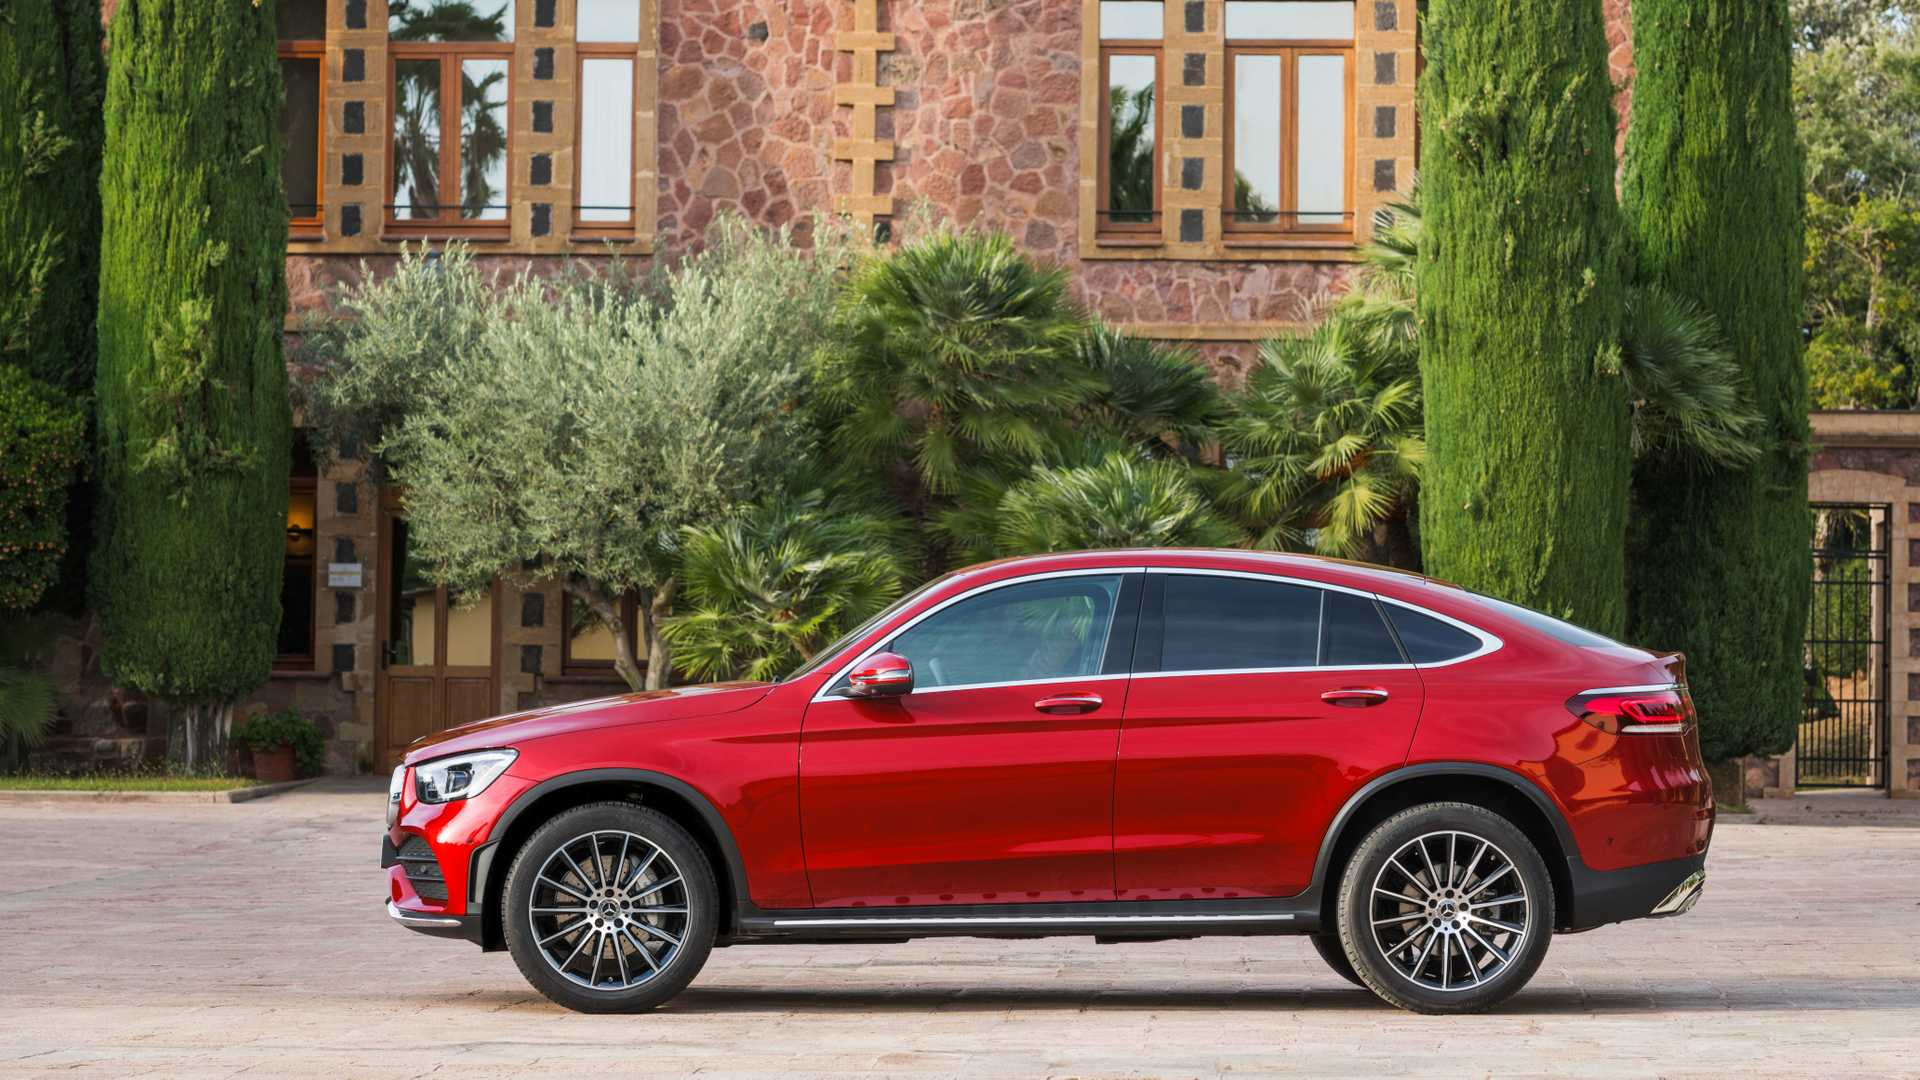 Mercedes Glc Coupe 2019 Rojo 011